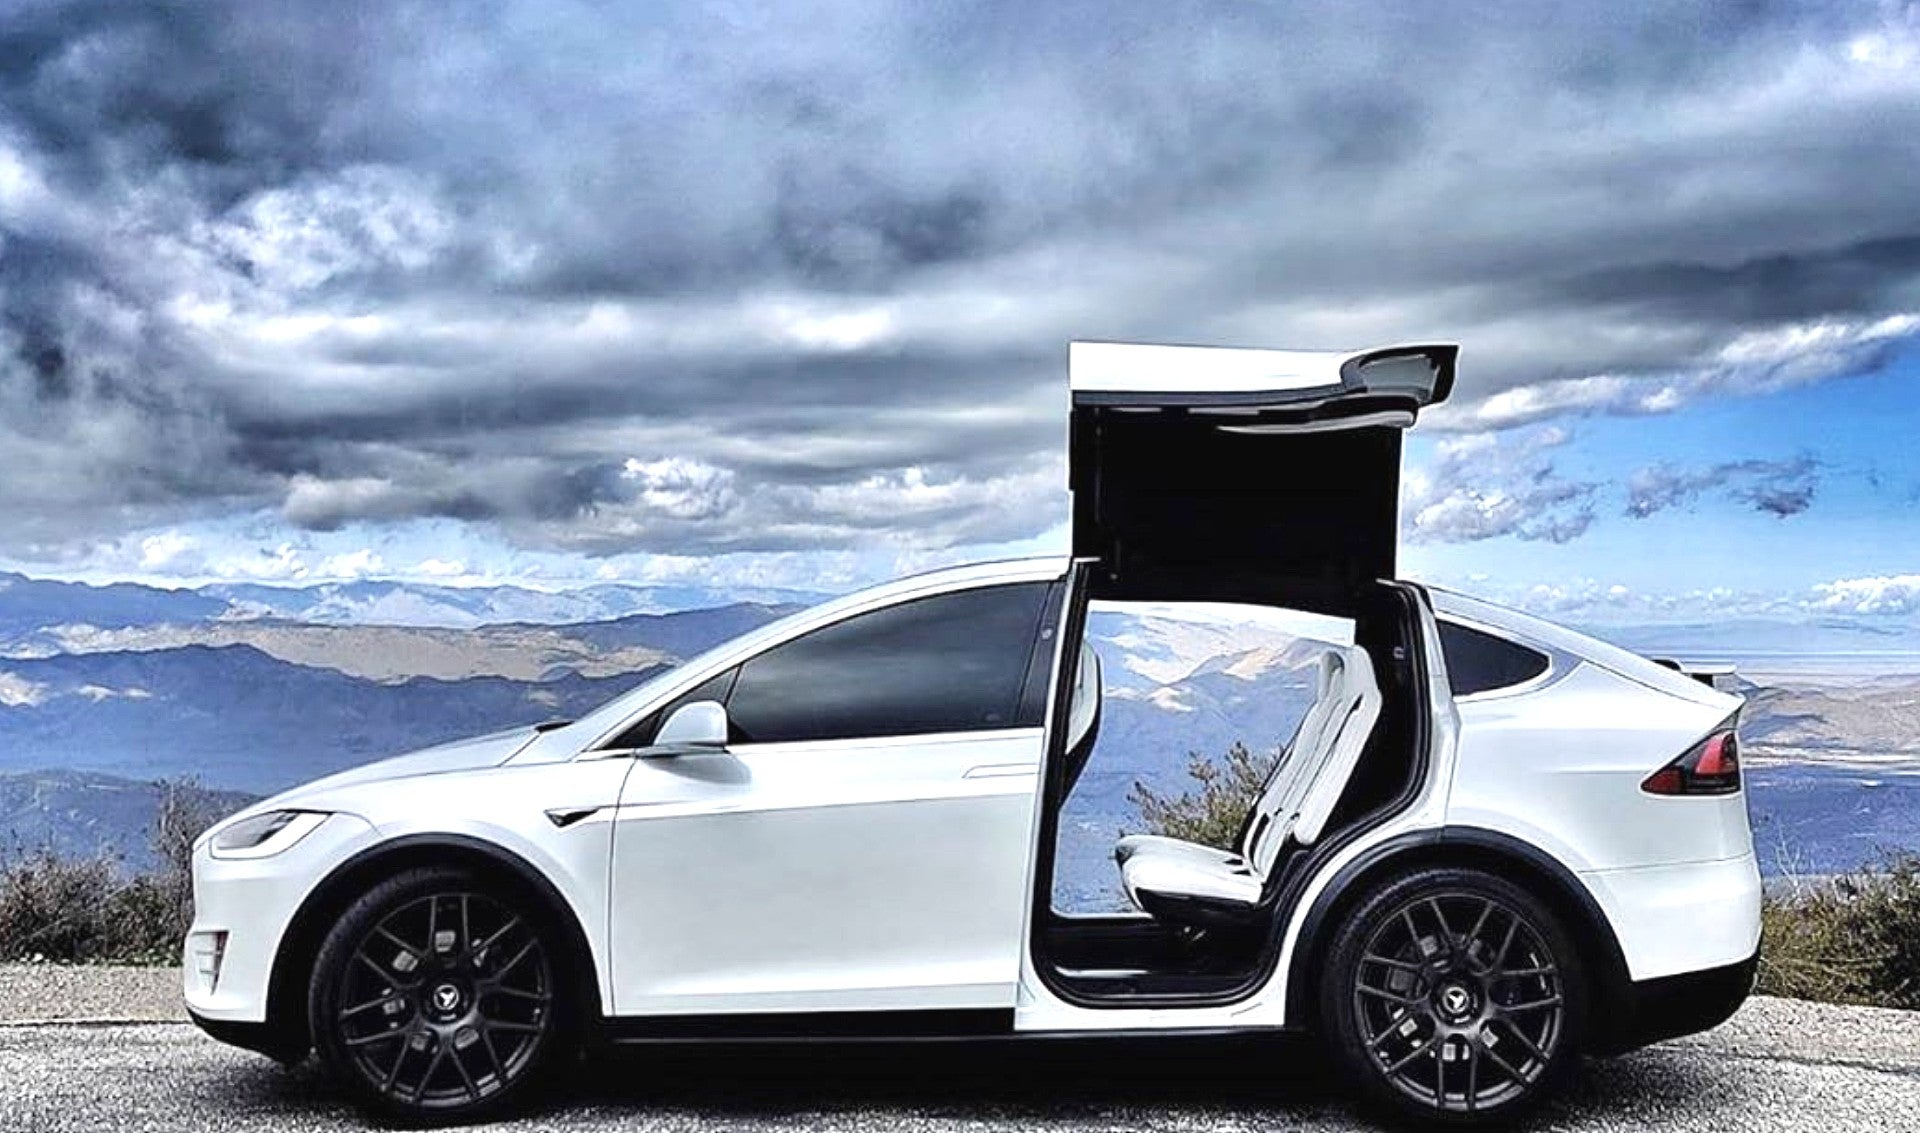 Tesla Model X Falcon Wing Doors Are Godsent For People With Special Needs